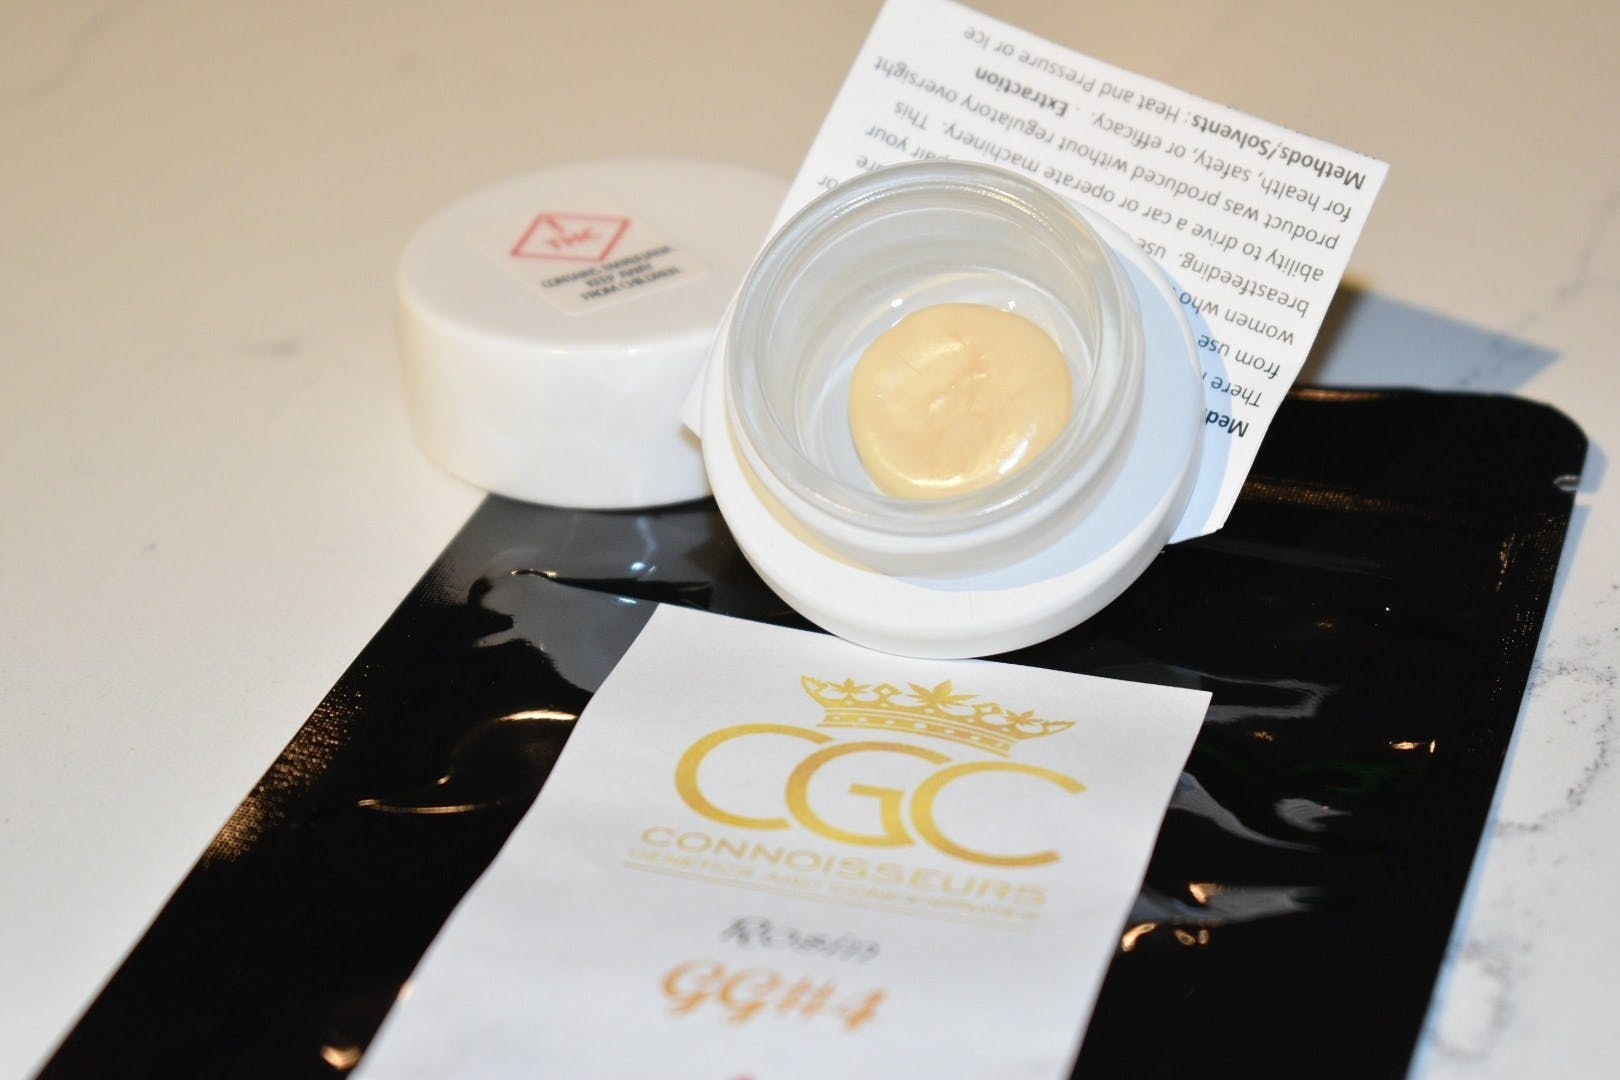 concentrate-cgc-black-label-rosin